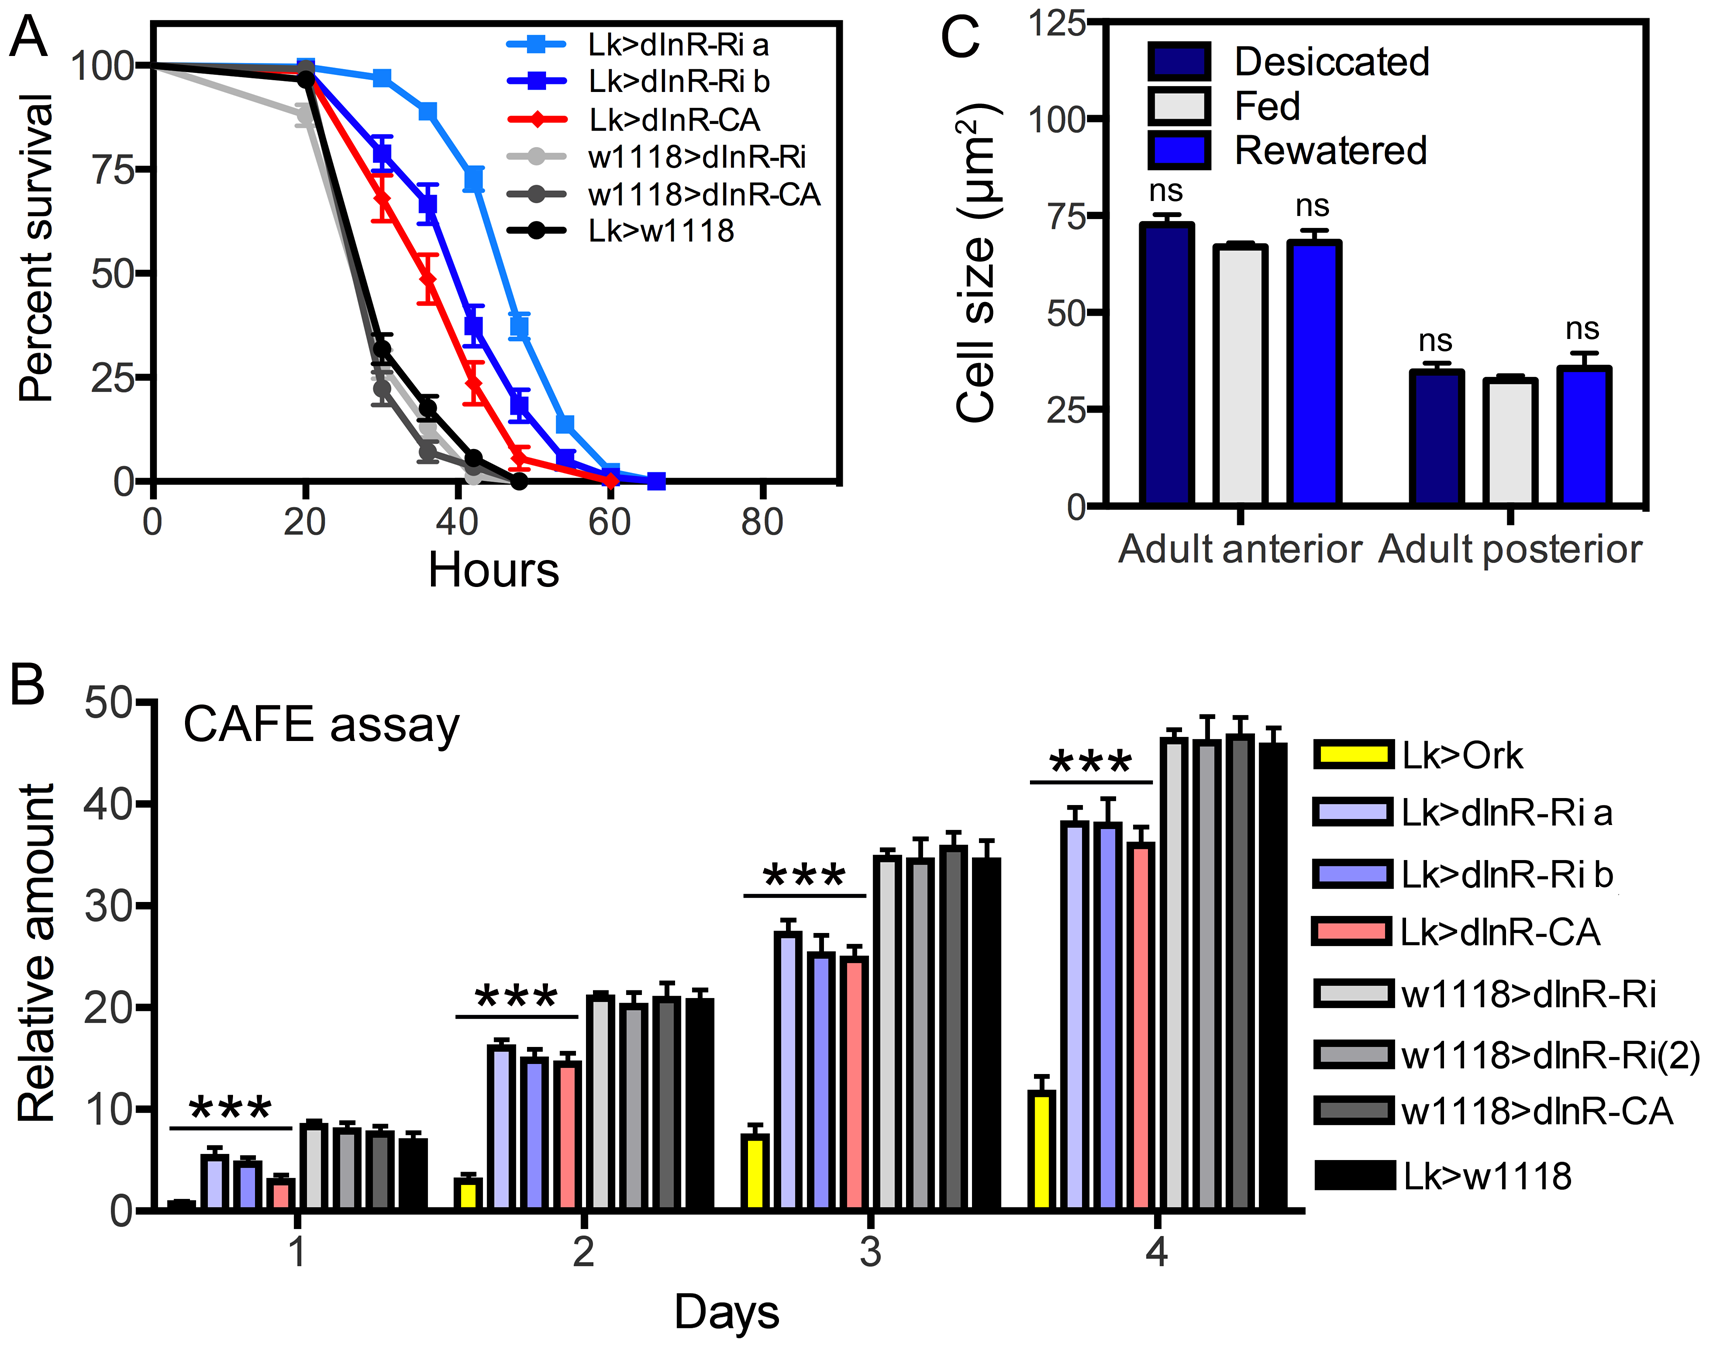 Functional effects of dInR manipulations of LK neurons in adult male flies.